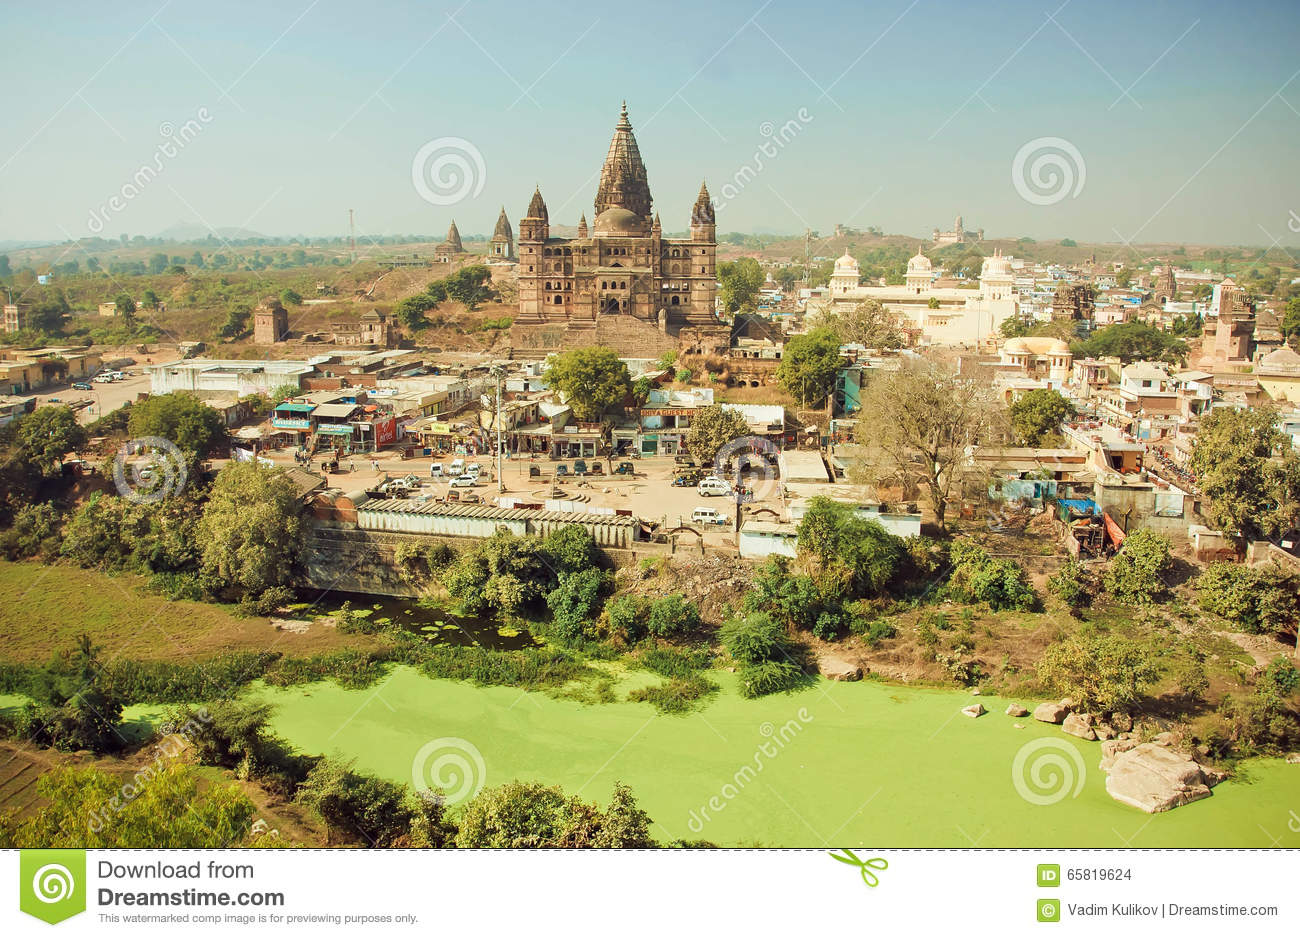 temple city hindu personals 10 amazing hindu temples the virupaksha temple in the city of hampi in india started out as a small shrine and grew into a large complex under the vijayanagara.